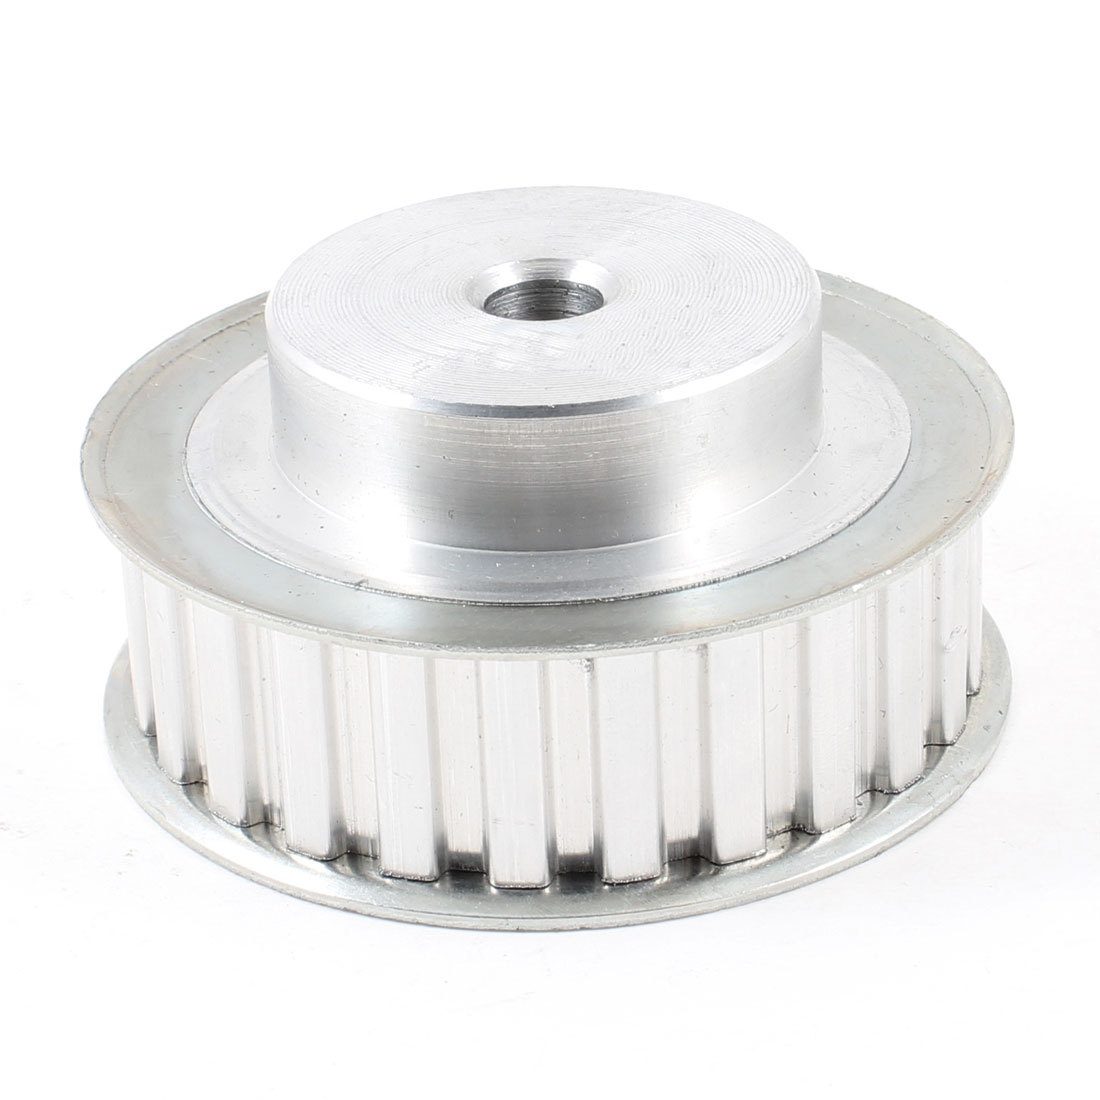 Silver Tone Aluminum Alloy L Type 25 Teeth 10mm Pilot Bore Timing Pulley